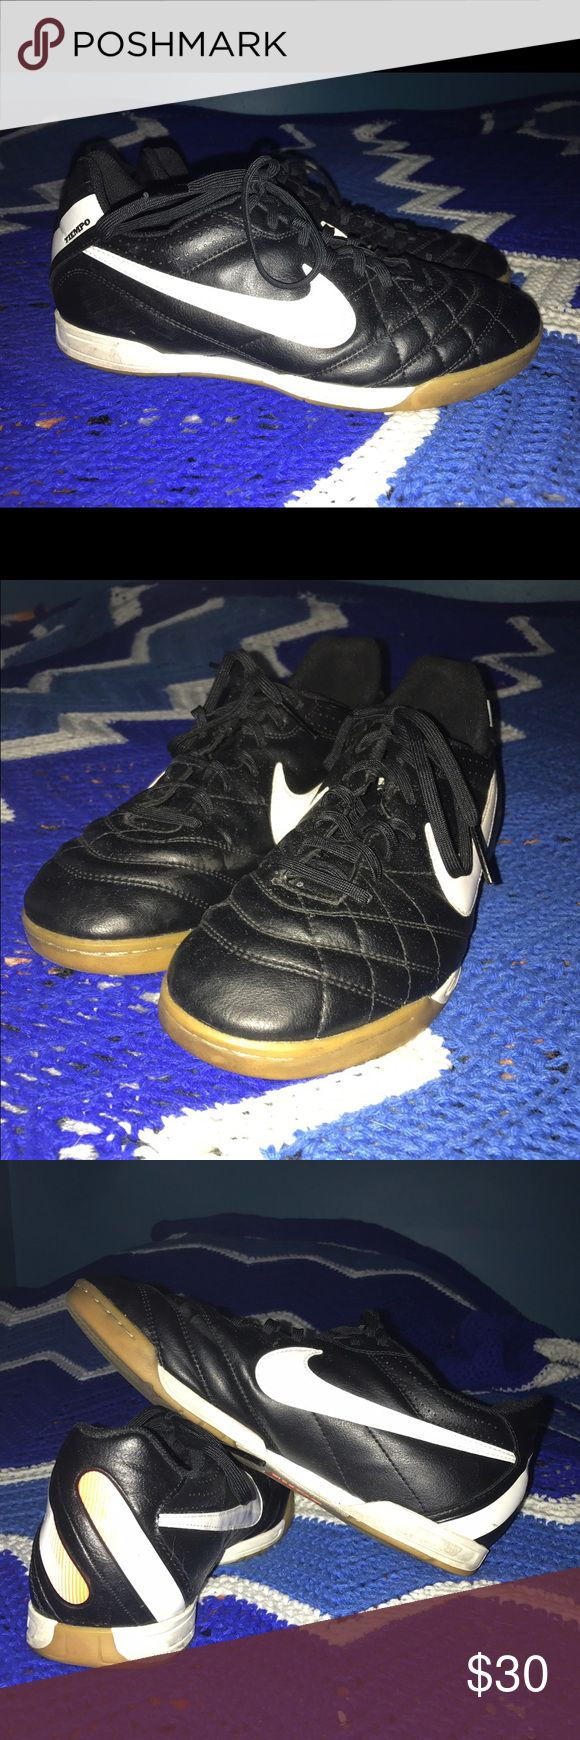 Nike Turf Shoes Nike turf shoes. Worn for a few inside field hockey games on turf. In good condition. Size 8.5 Nike Shoes Athletic Shoes